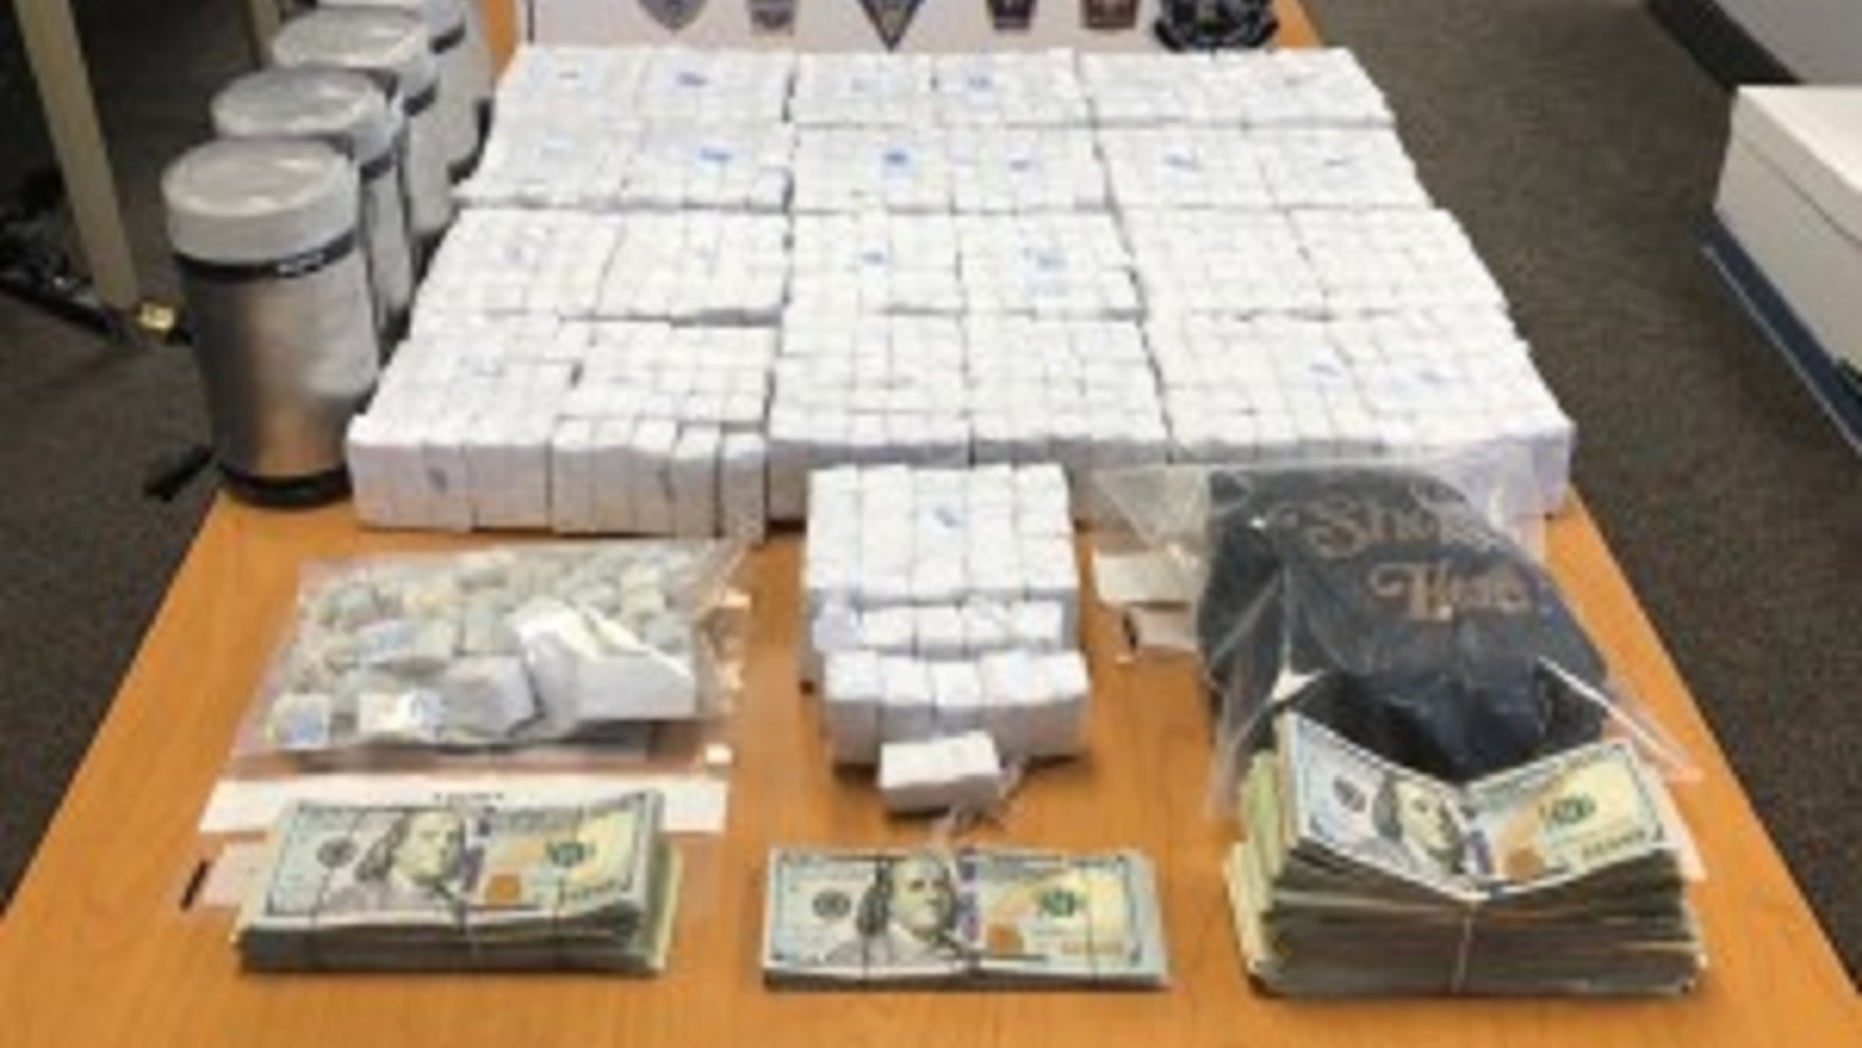 Over $250,000 and approximately 50,000 bags of heroin were seized in a series of raids conducted this week by Massachusetts State Police.